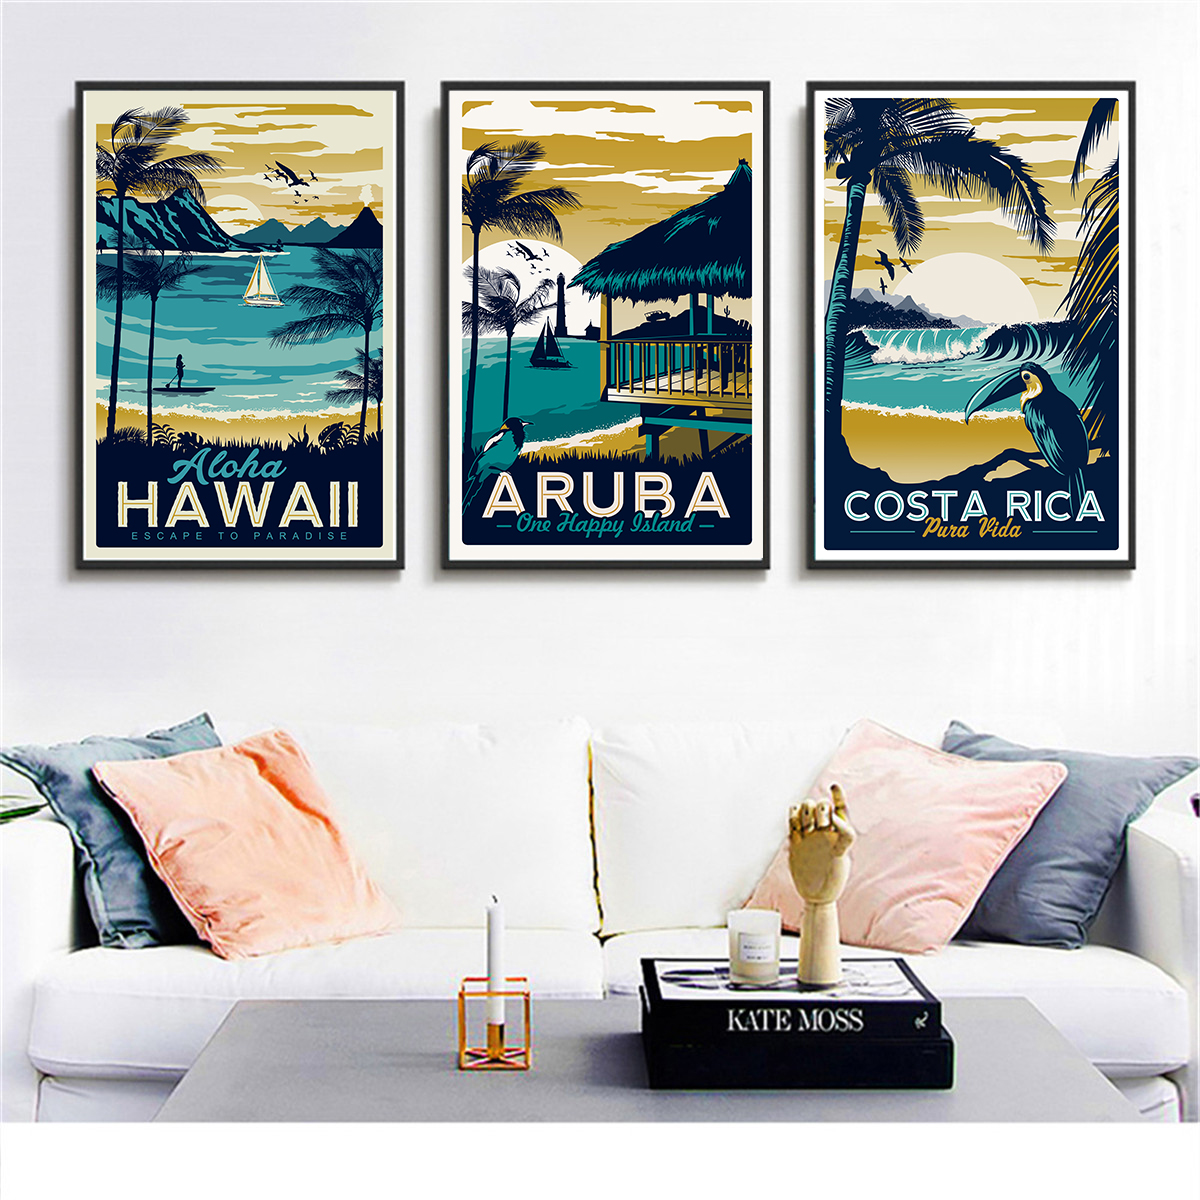 Retro painting Aruba seascape hawaii painting canvas prints wall art craft Poster Nordic About horse decoration for bar cafe